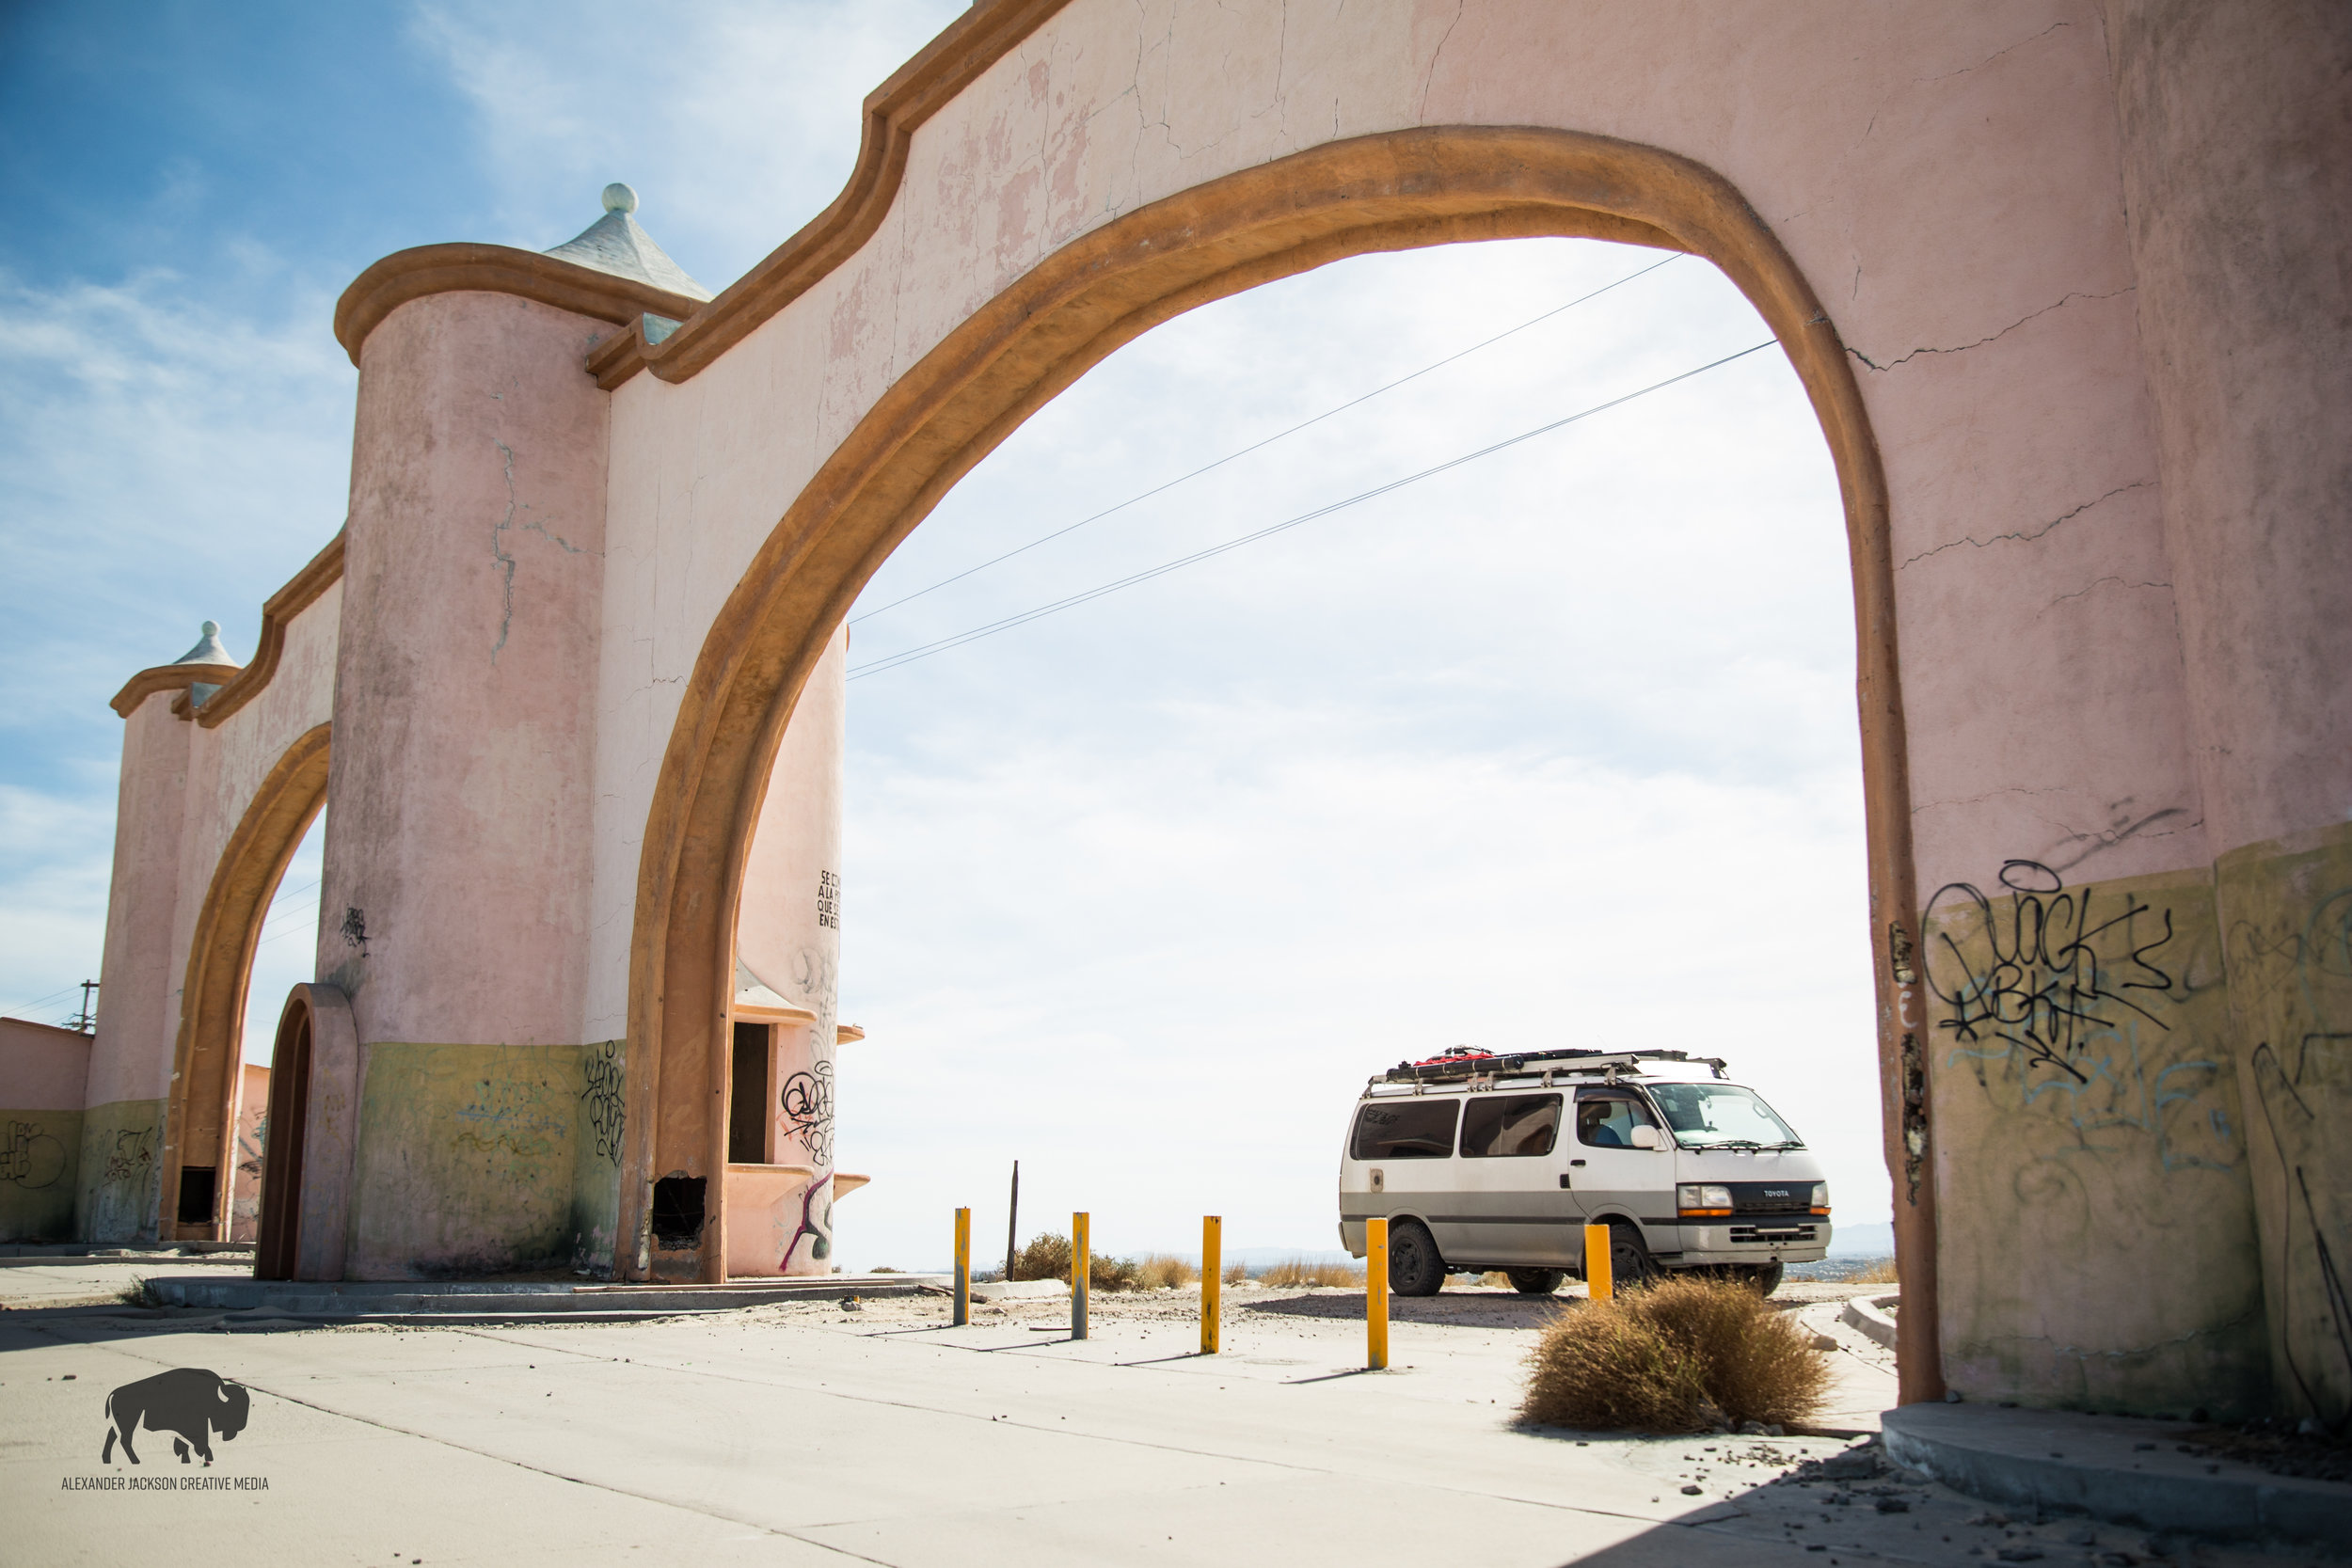 One of the last places I drove through before making it back in the the USA, San Felipe.  I realized too late that we should have traveled on the Sea of Cortez side of Baja.